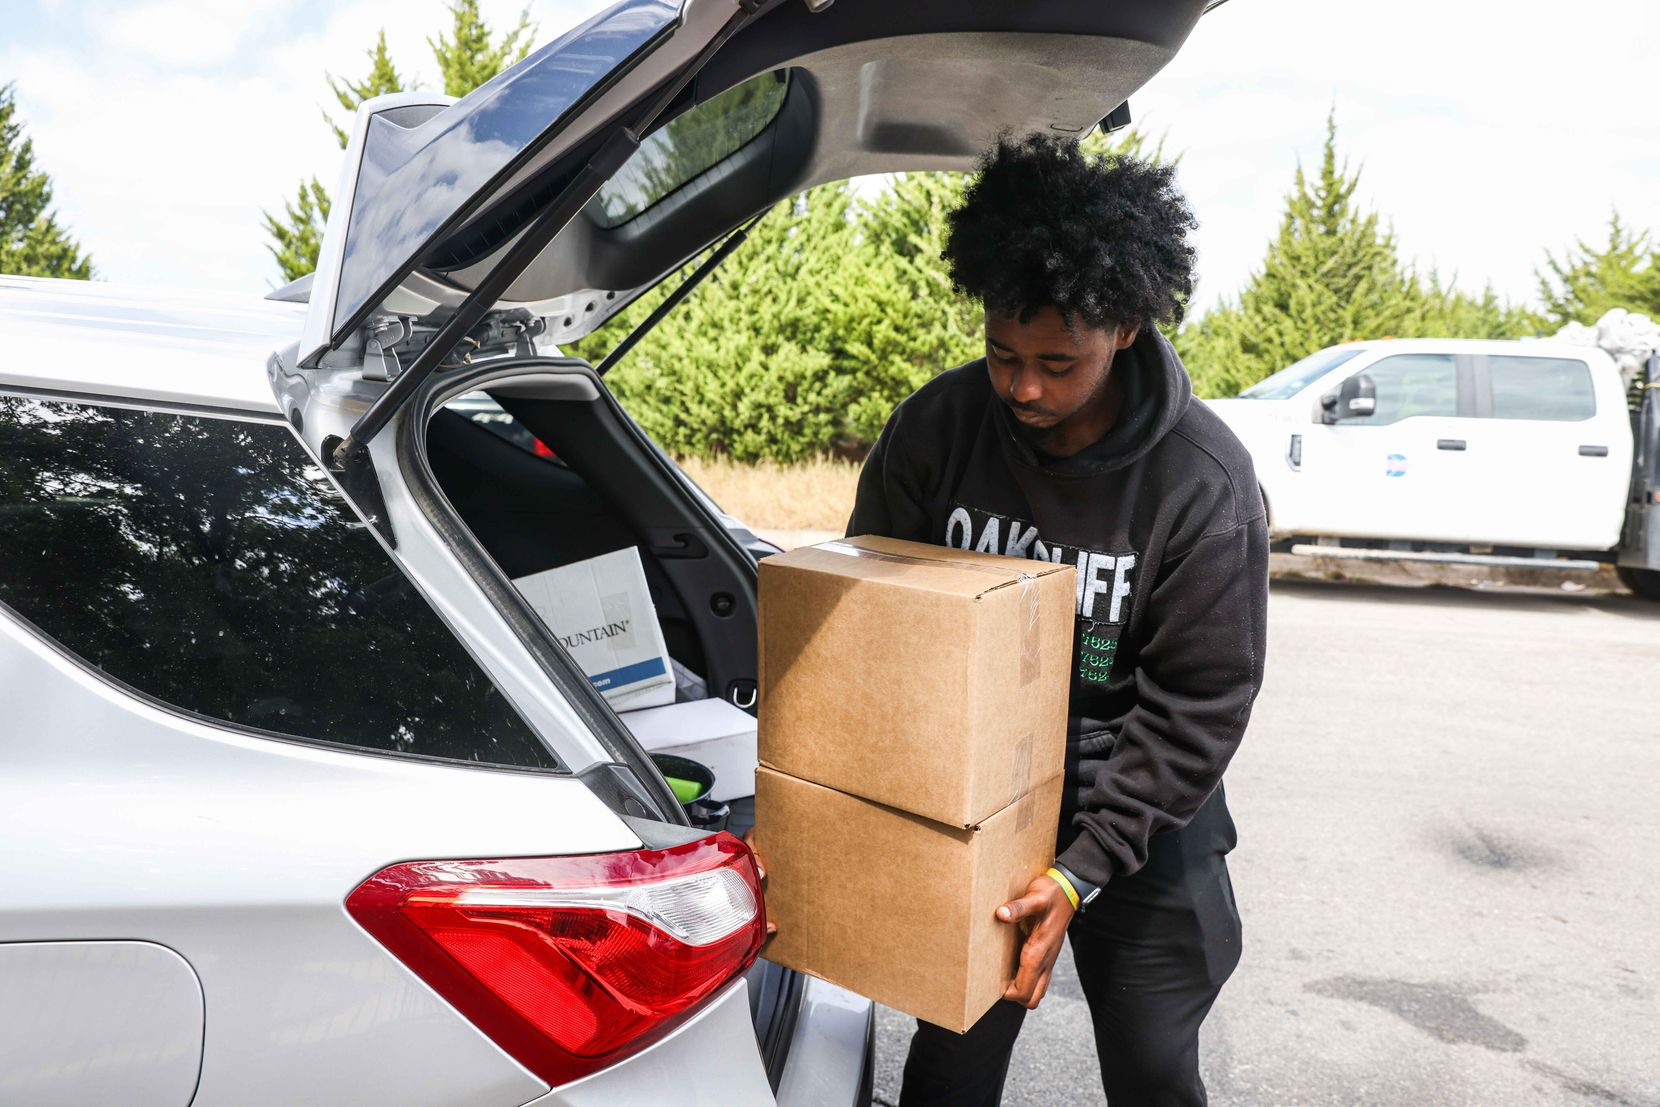 Michael Berry, a program associate at For Oak Cliff, a nonprofit service agency, brings boxes of goods for residents displaced by Wednesday's explosion and fire.